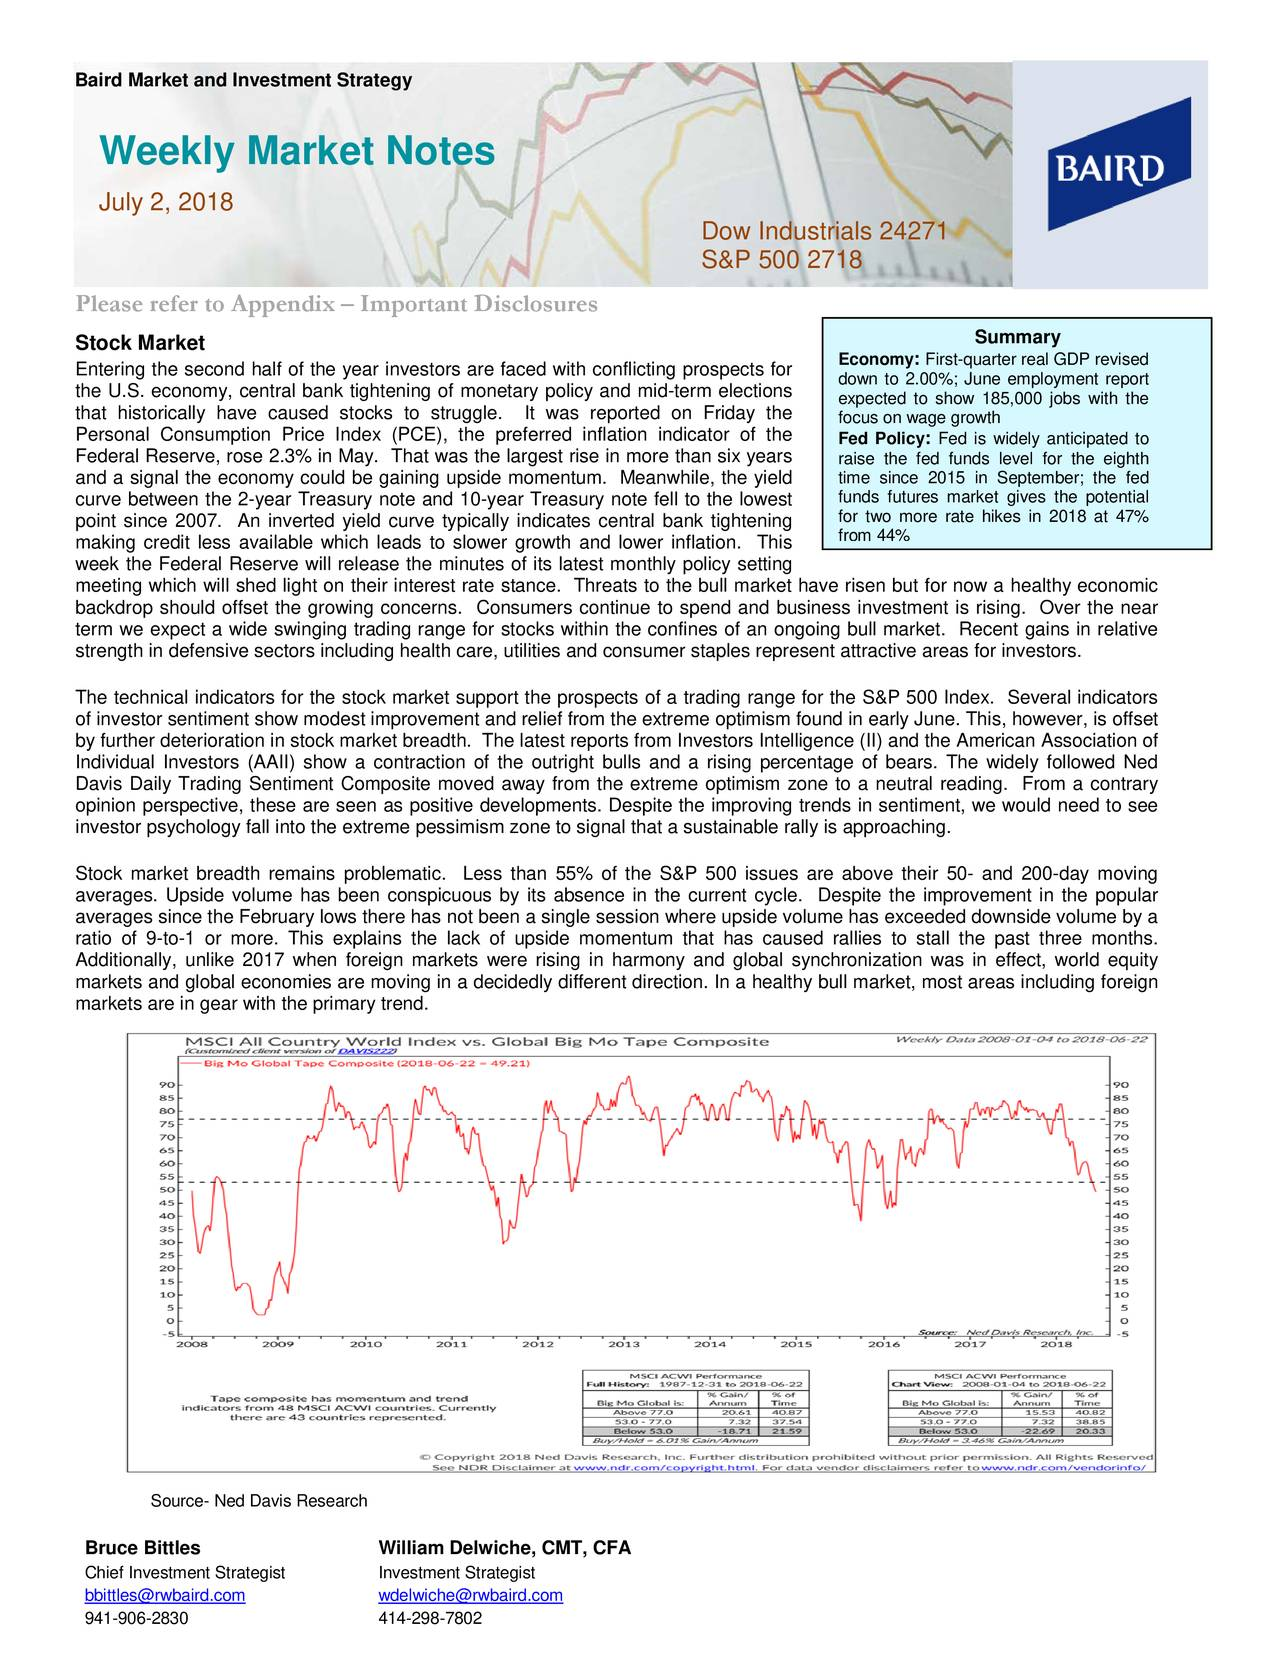 Weekly Market Notes July 2, 2018 Dow Industrials 24271 S&P 500 2718 Please refer to Appendix – Important Disclosures Stock Market Summary Economy :First-quarter real GDP revised Entering the second half of the year investors are faced with conflicting prospects for down to 2.00%; June employment report the U.S. economy, central bank tightening of monetary policy and mid-term elections expected to show 185,000 jobs with the that historically have caused stocks to struggle. It was reported on Friday the focus on wage growth Personal Consumption Price Index (PCE), the preferred inflation indicator of the Fed Policy: Fed is widely anticipated to Federal Reserve, rose 2.3% in May. That was the largest rise in more than six years raise the fed funds level for the eighth and a signal the economy could be gaining upside momentum. Meanwhile, the yield time since 2015 in September; the fed funds futures market gives the potential curve between the 2-year Treasury note and 10-year Treasury note fell to the lowest for two more rate hikes in 2018 at 47% point since 2007. An inverted yield curve typically indicates central bank tightening from 44% making credit less available which leads to slower growth and lower inflation. This week the Federal Reserve will release the minutes of its latest monthly policy setting meeting which will shed light on their interest rate stance. Threats to the bull market have risen but for now a healthy economic backdrop should offset the growing concerns. Consumers continue to spend and business investment is rising. Over the near term we expect a wide swinging trading range for stoc ks within the confines of an ongoing bull market. Recent gains in relative strength in defensive sectors including health care, utilities and consumer staples represent attractive areas for investors. The technical indicators for the stock market support the prospects of a trading range for the S&P 500 Index. Several indicators of investor sentiment show modest improve